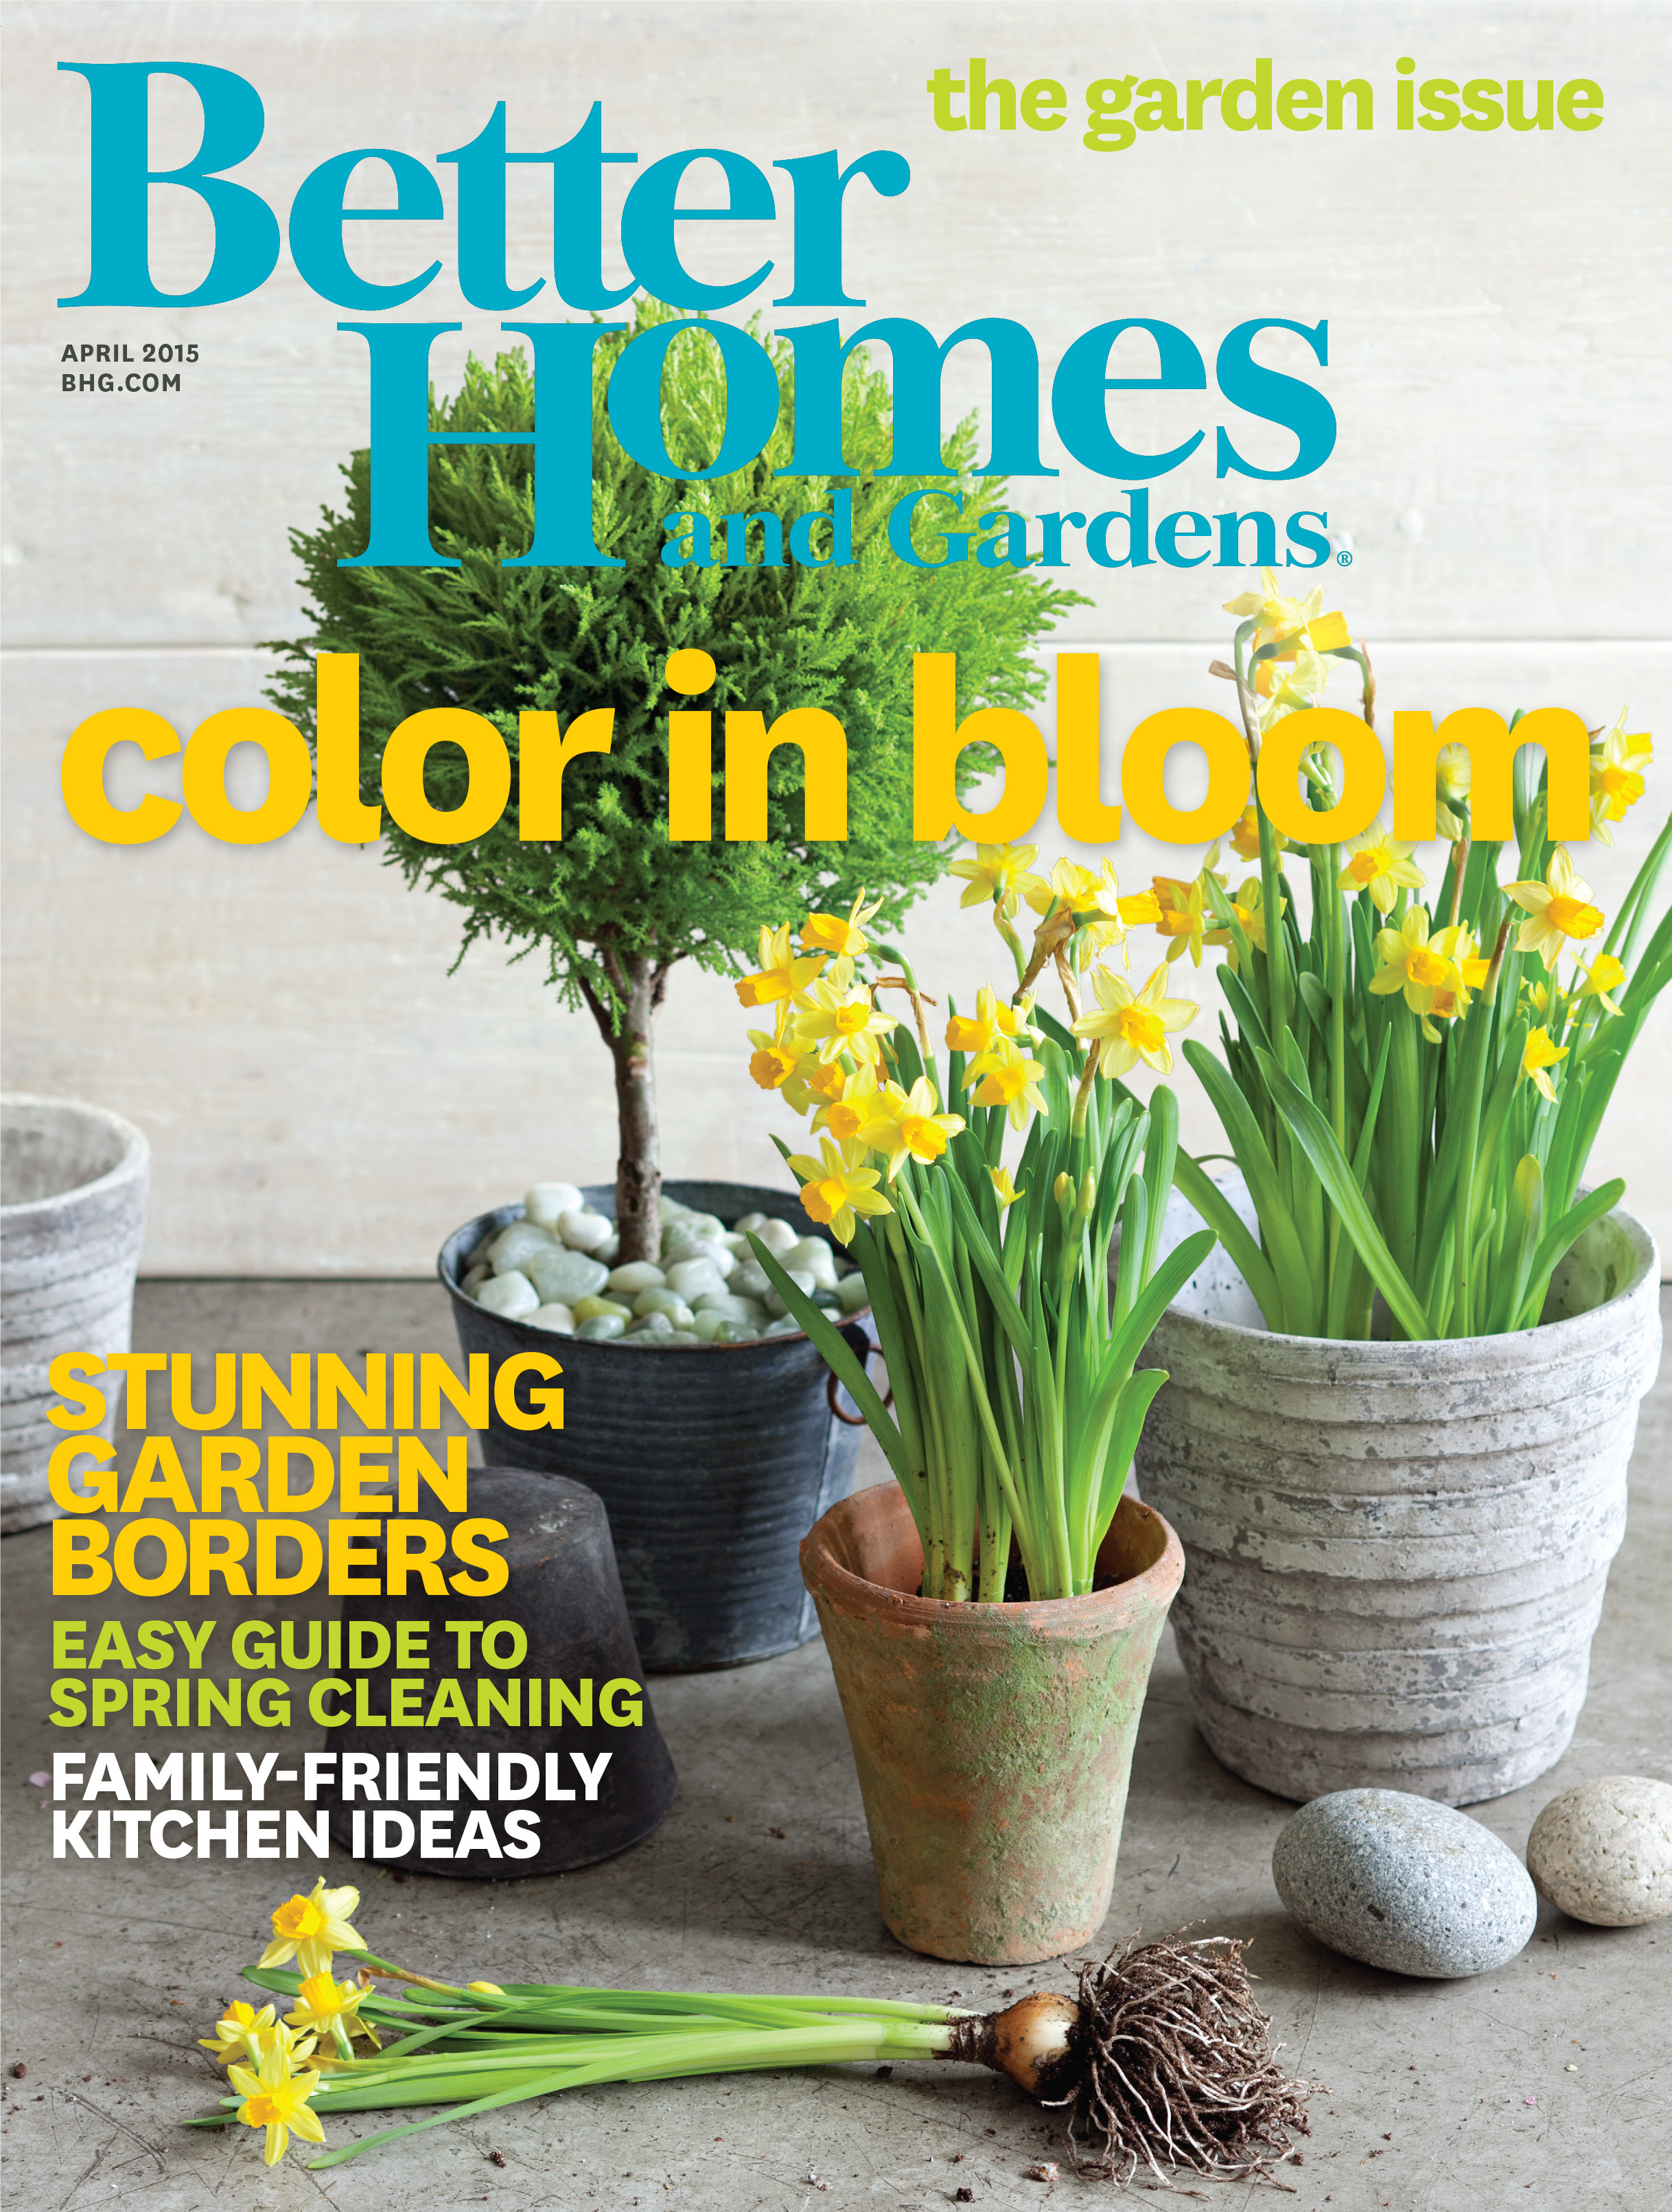 april 2015 - Better Homes And Gardens Kitchen Ideas